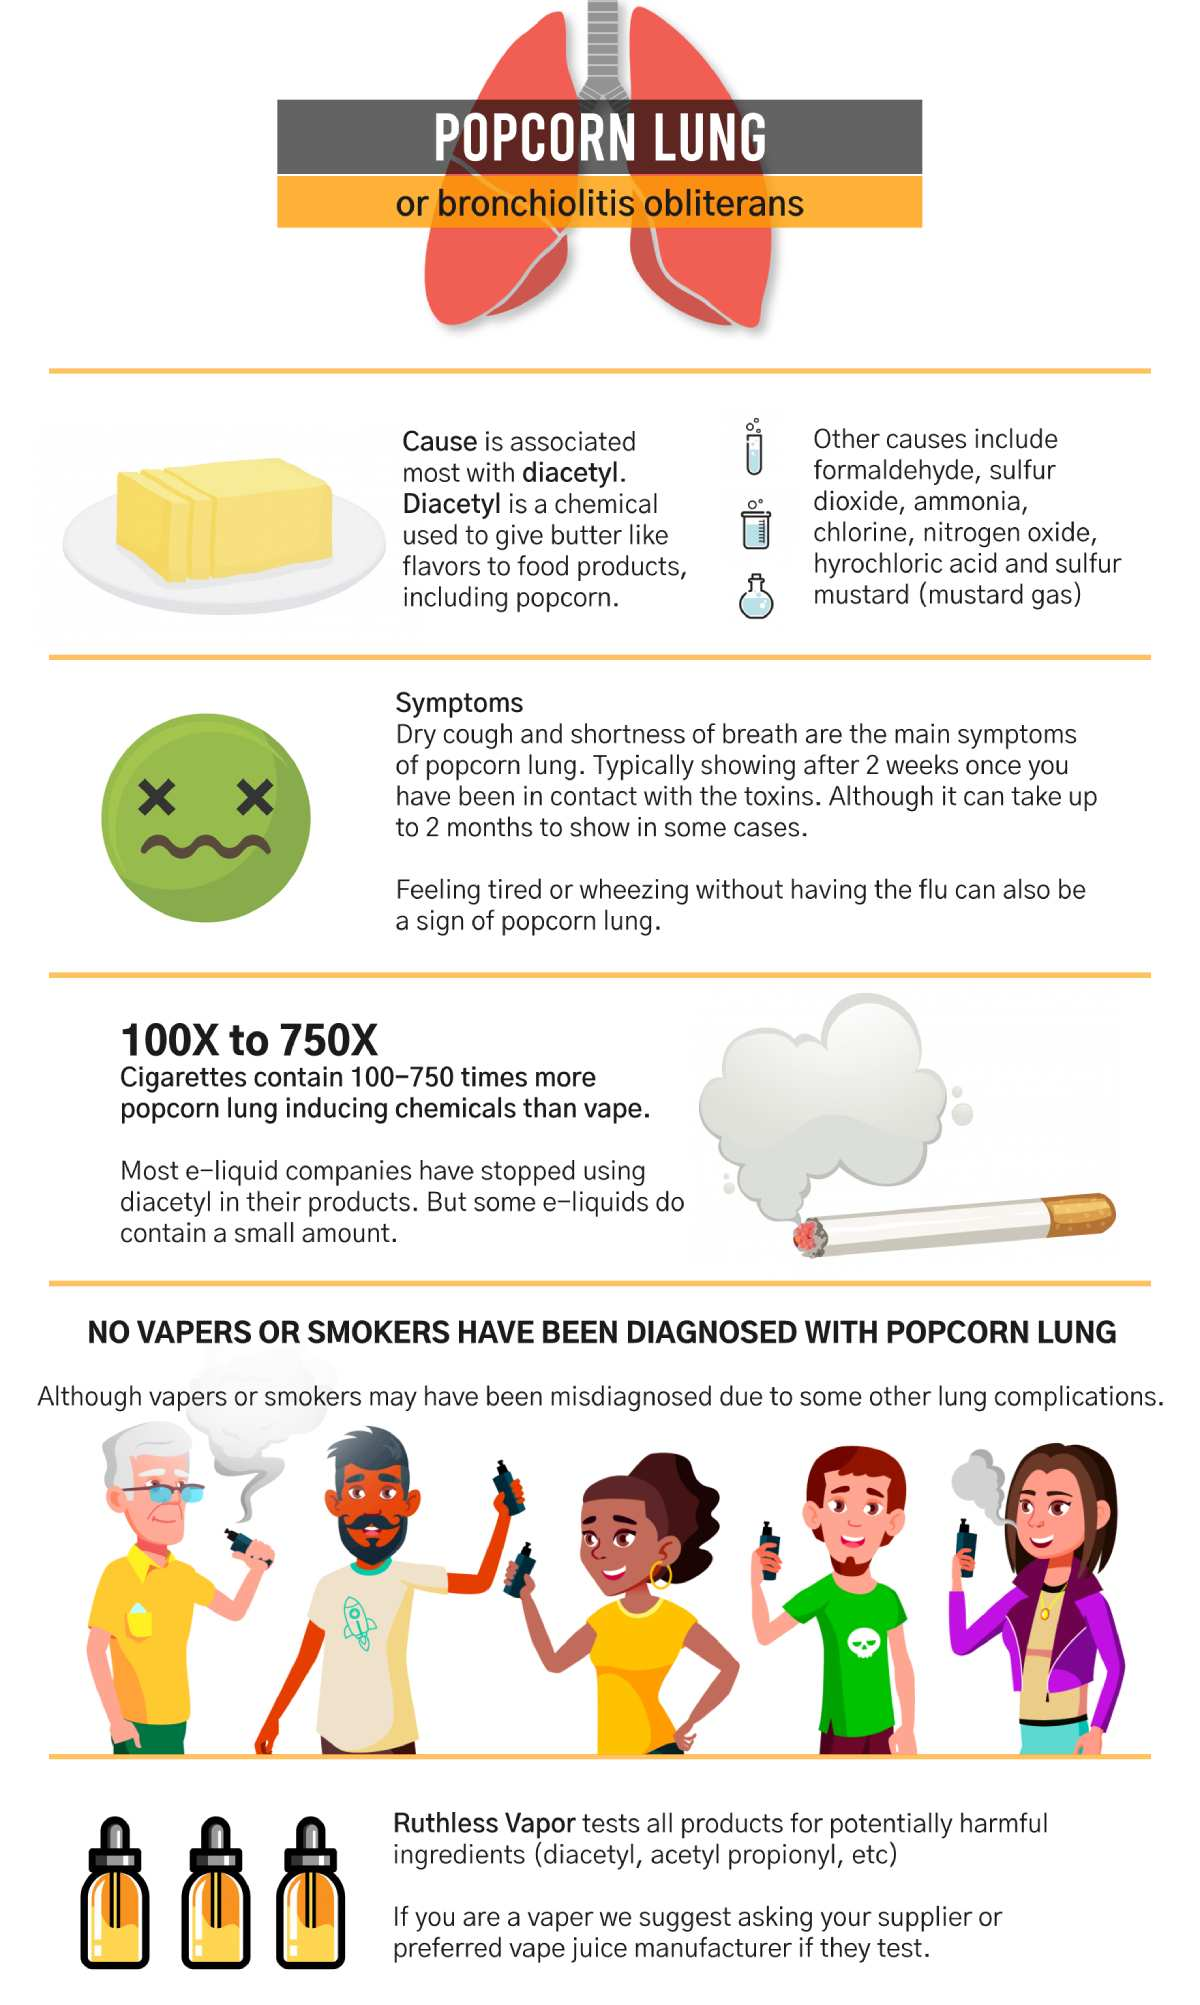 does vaping cause popcorn lung?